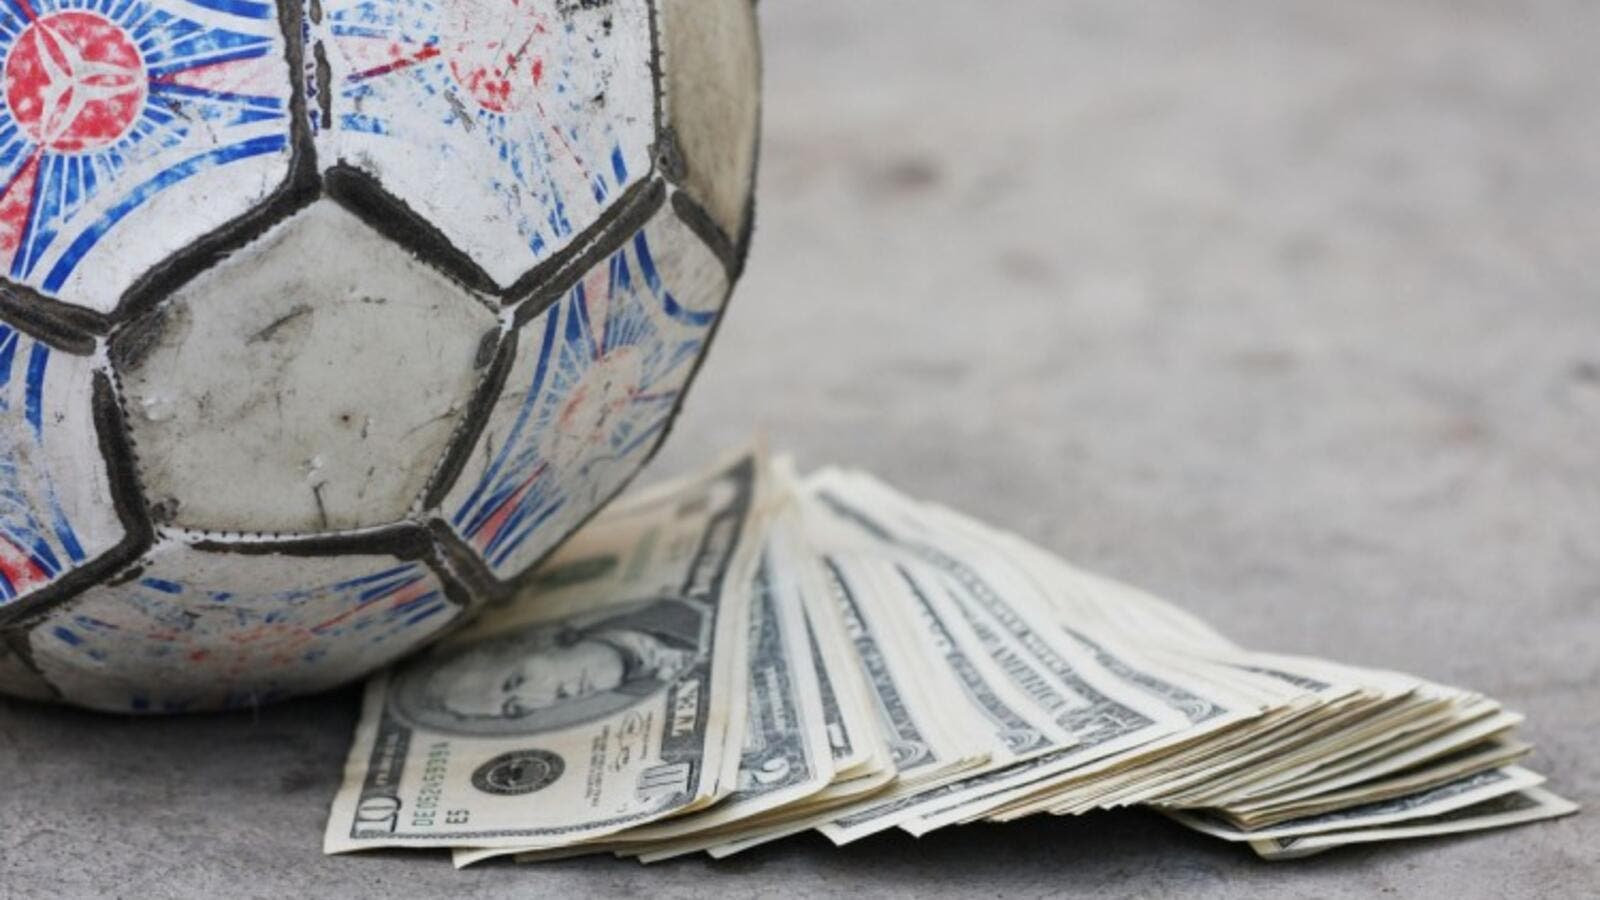 Corruption and match-fixing is once again unveiled in African football. This time the BBC exposes the problem in Algeria (Photo: mpc-journal.org)